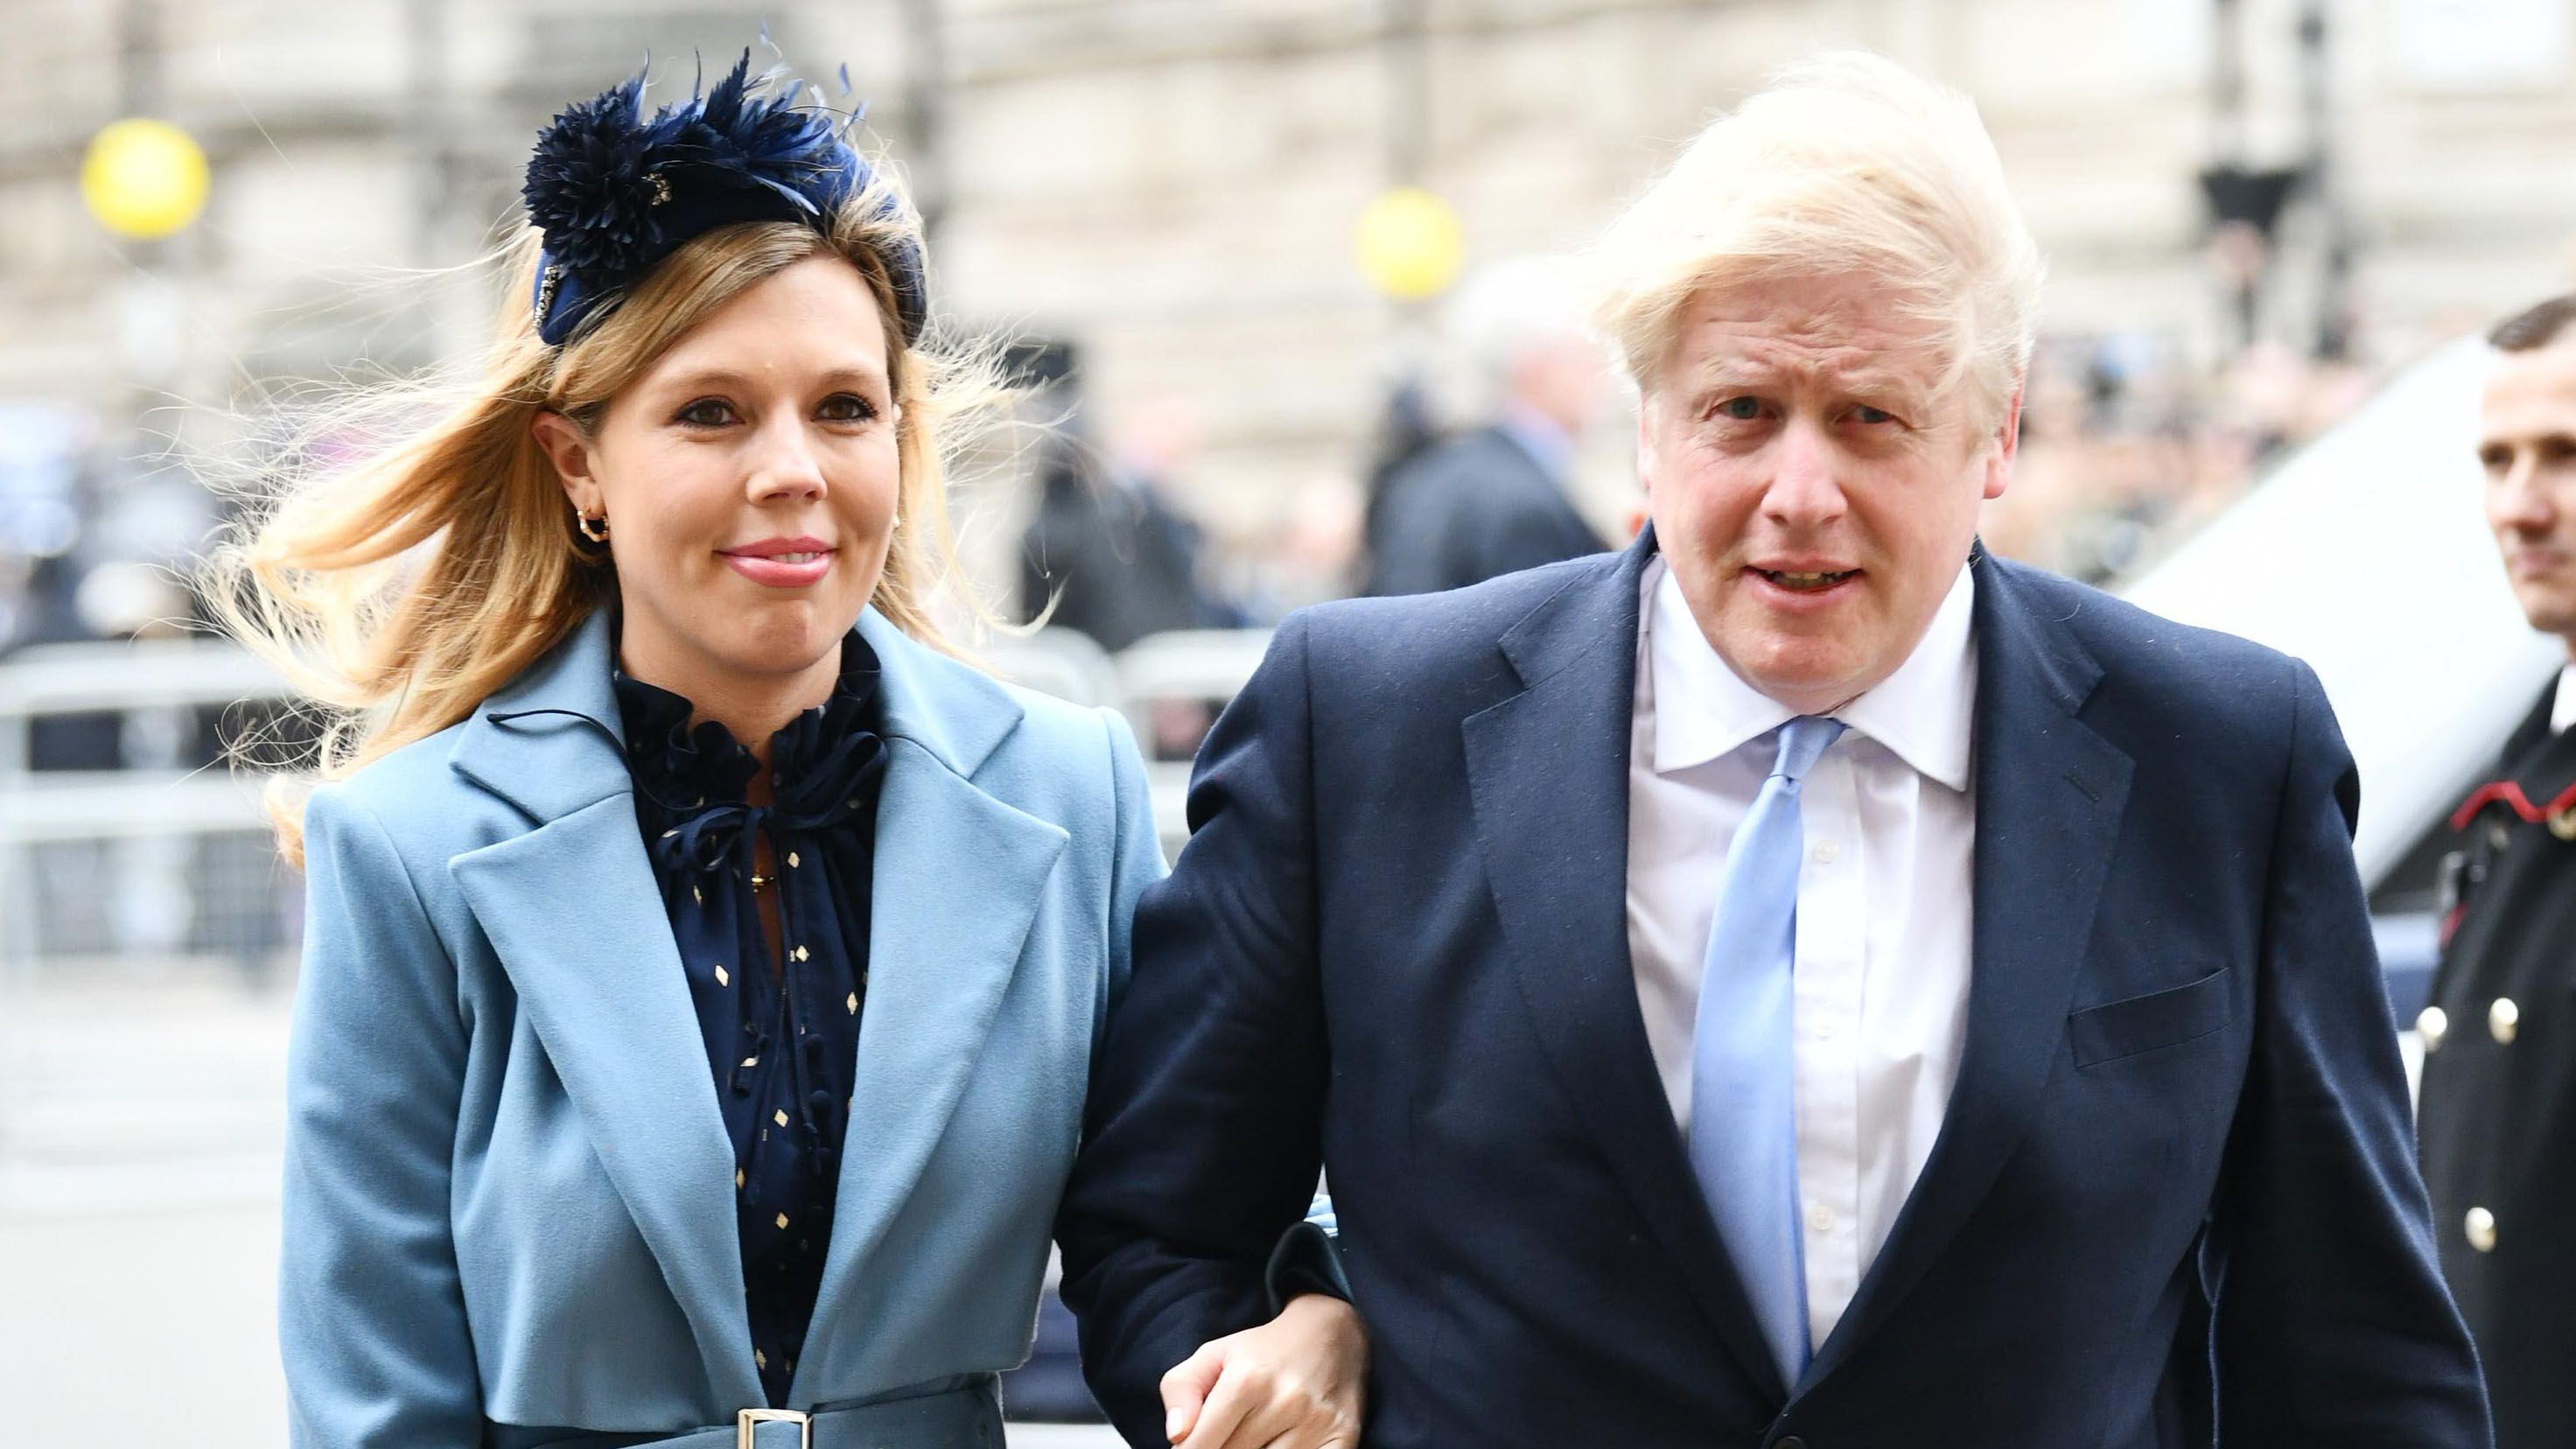 Boris Johnson et sa compagne, Carrie Symonds @Reuters